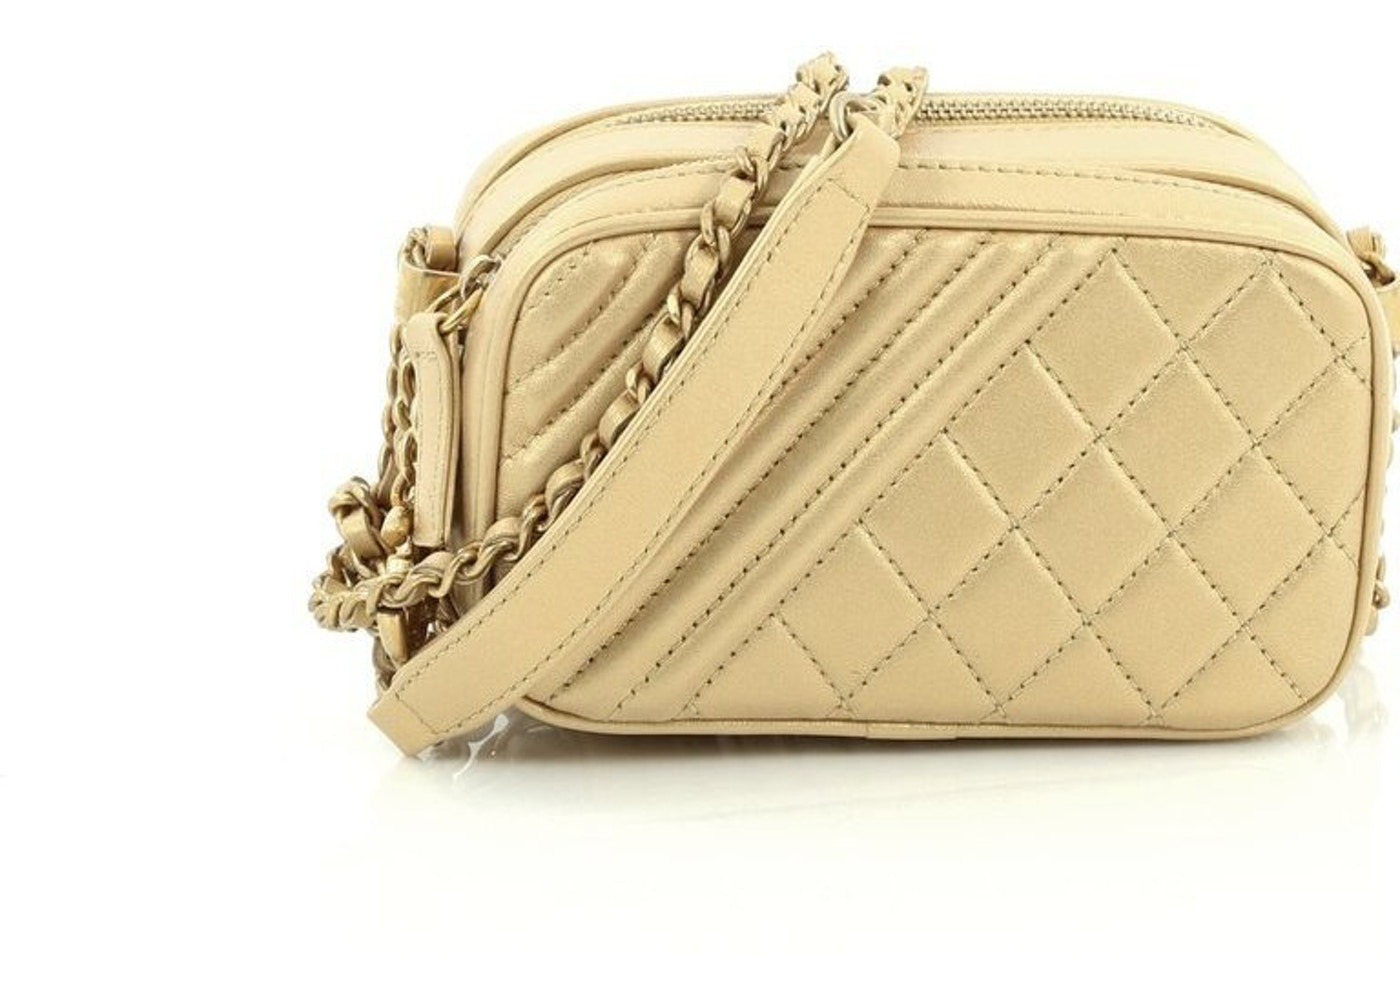 01ecadc6d010a9 Chanel Camera Bag Coco Boy Quilted Metallic Mini Gold. Coco Boy Quilted  Metallic Mini Gold